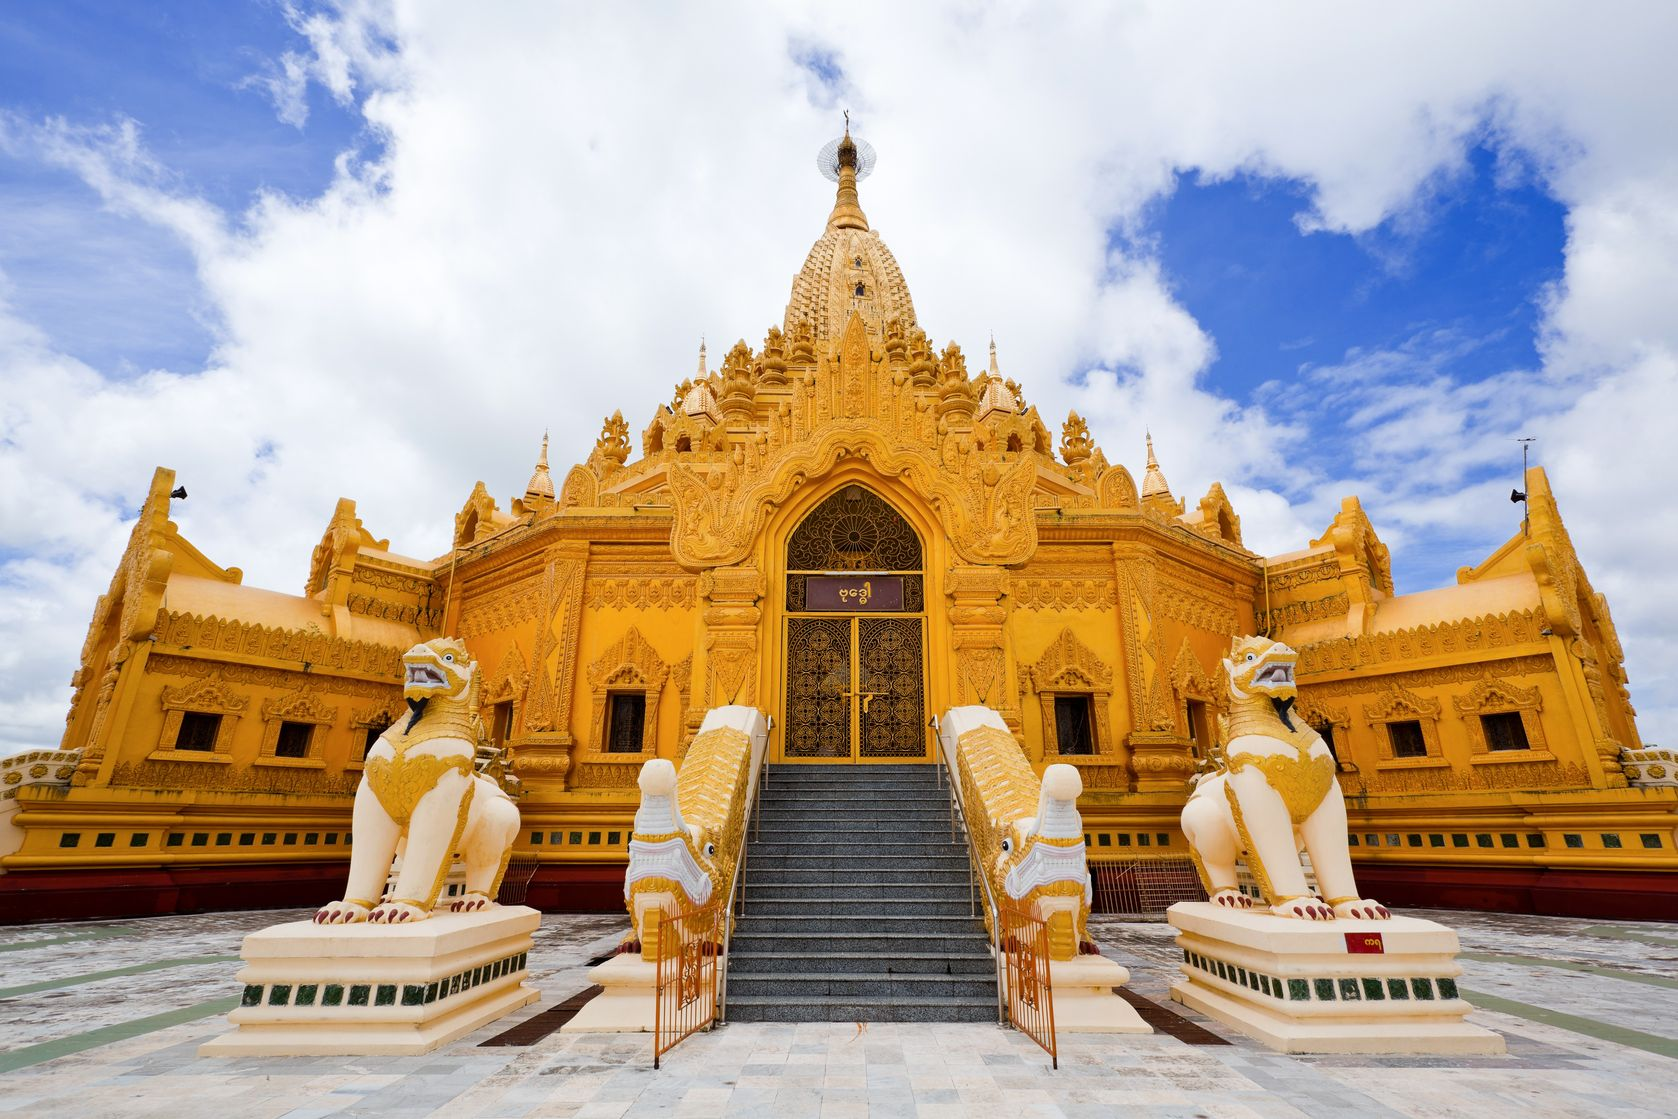 Buddha Hd Wallpaper 1080p Cambodia Wallpapers High Quality Download Free